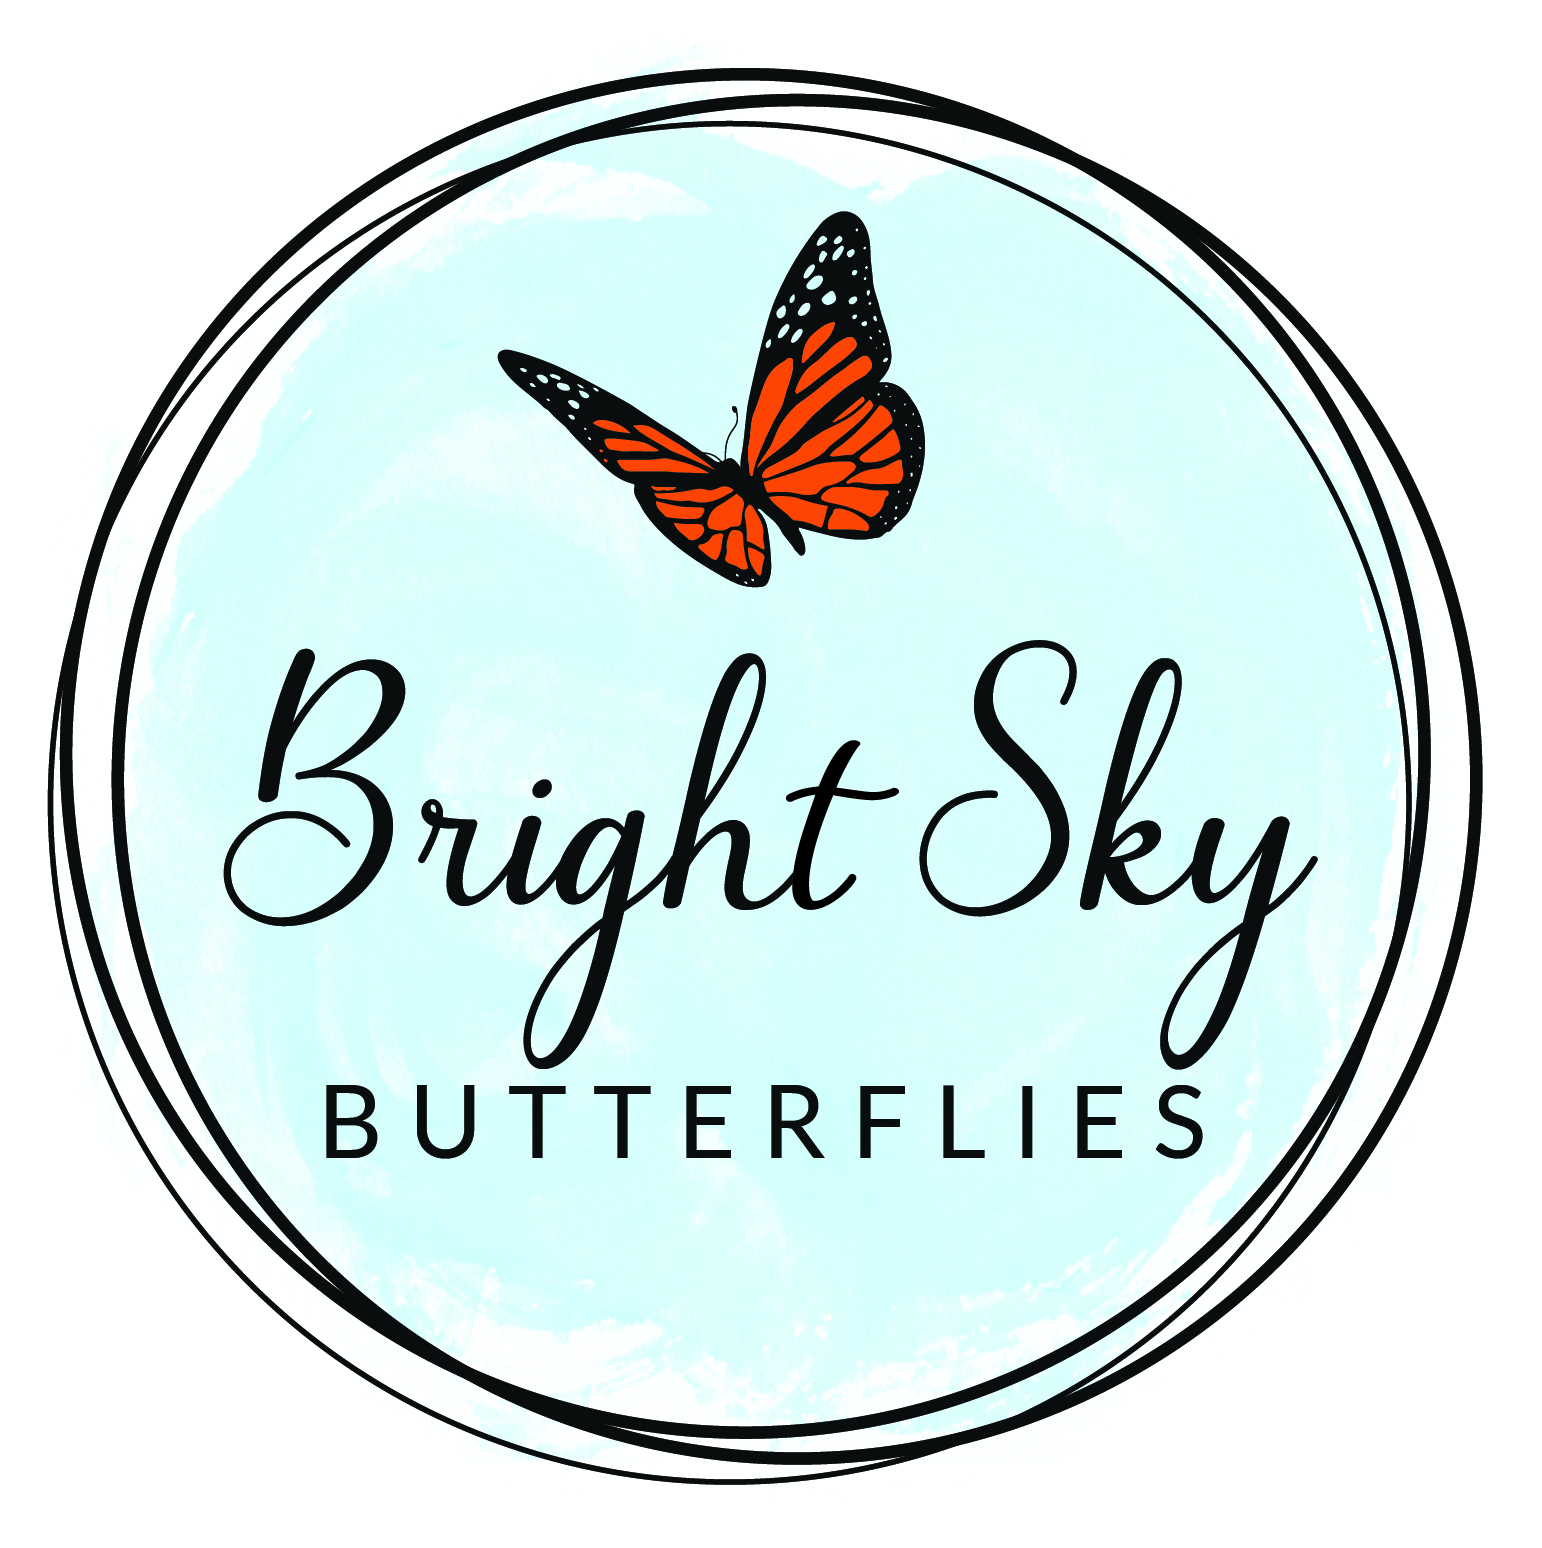 Bright Sky Butterflies